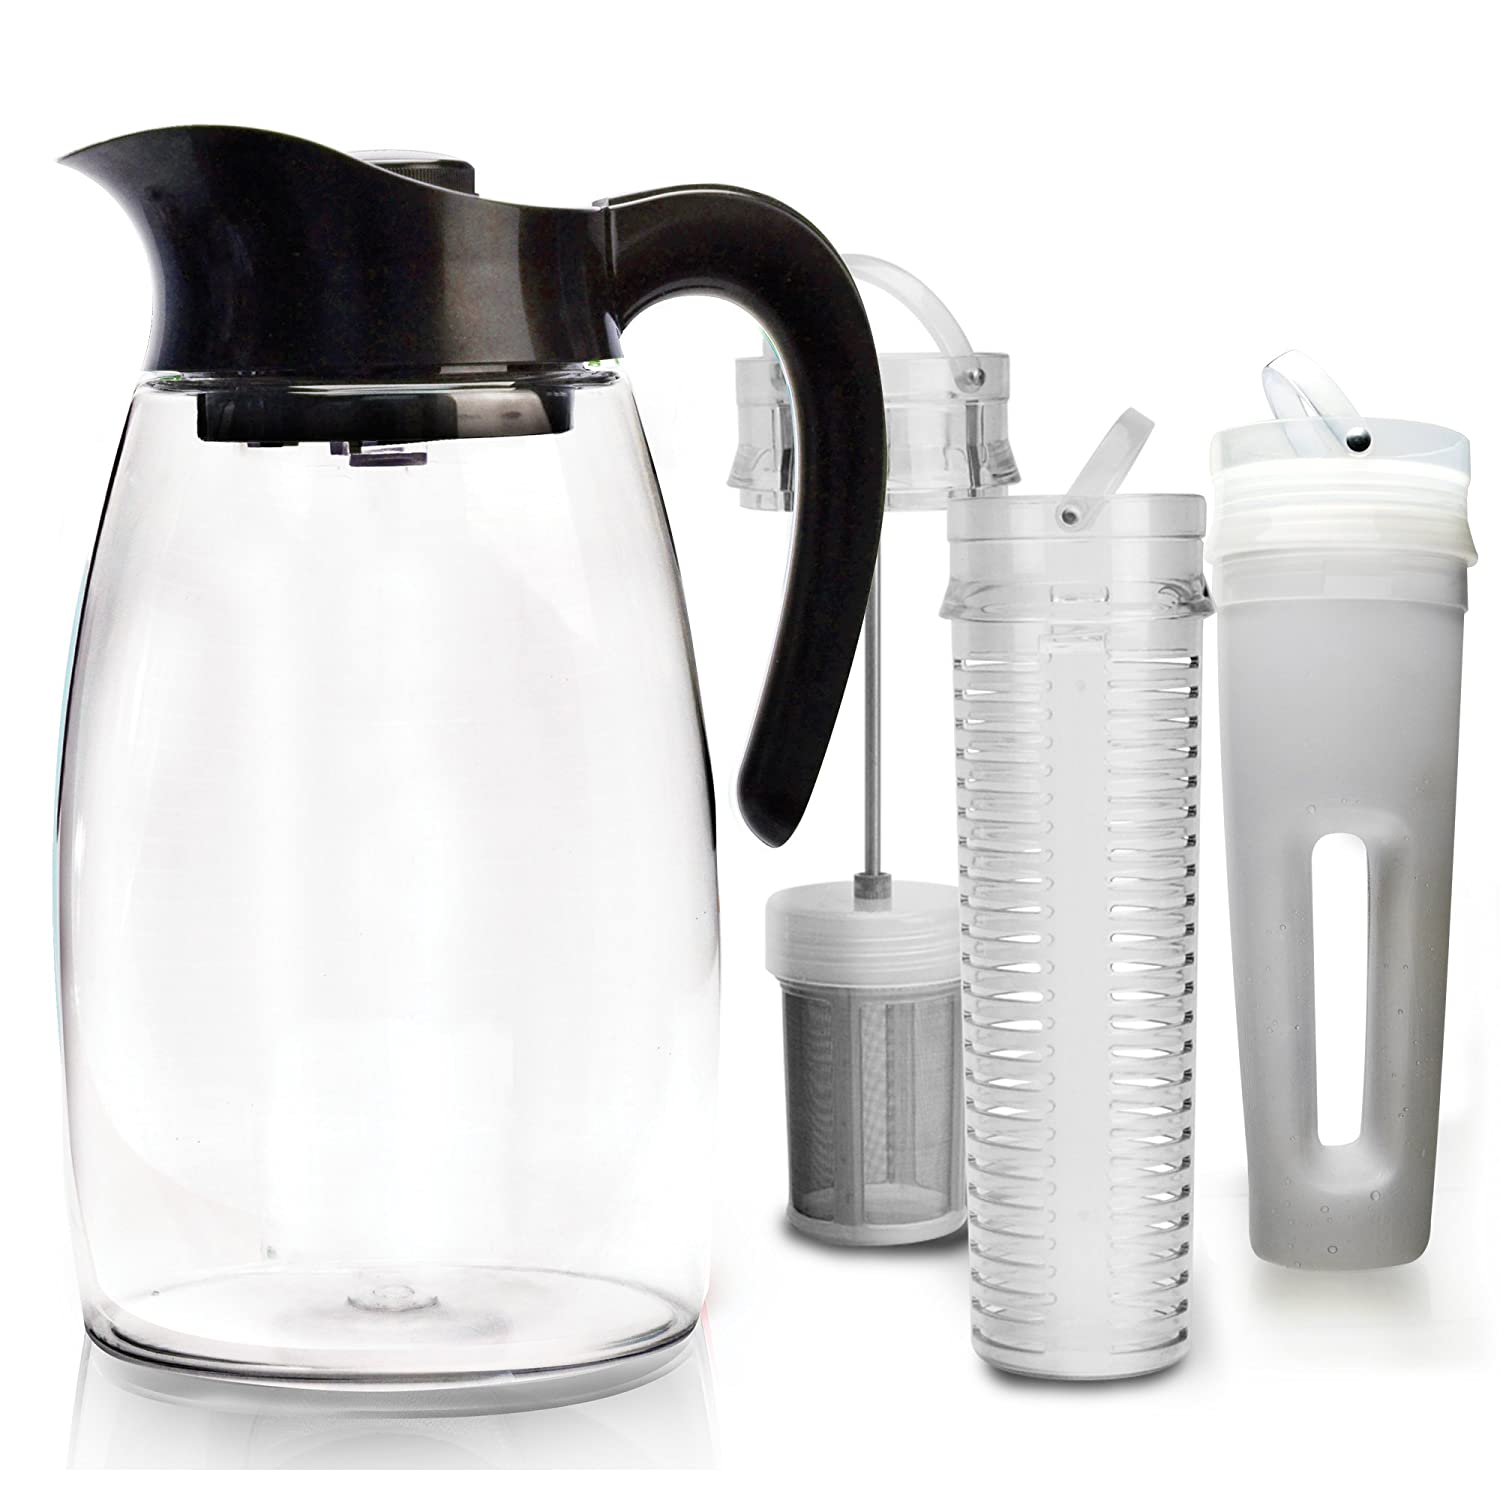 Primula Flavor-It Beverage System – Includes Large Capacity Fruit Infuser Core, Tea Infuser Core, and Chill Core – Dishwasher Safe – 2.9 Qt. – Black PFBK-3725